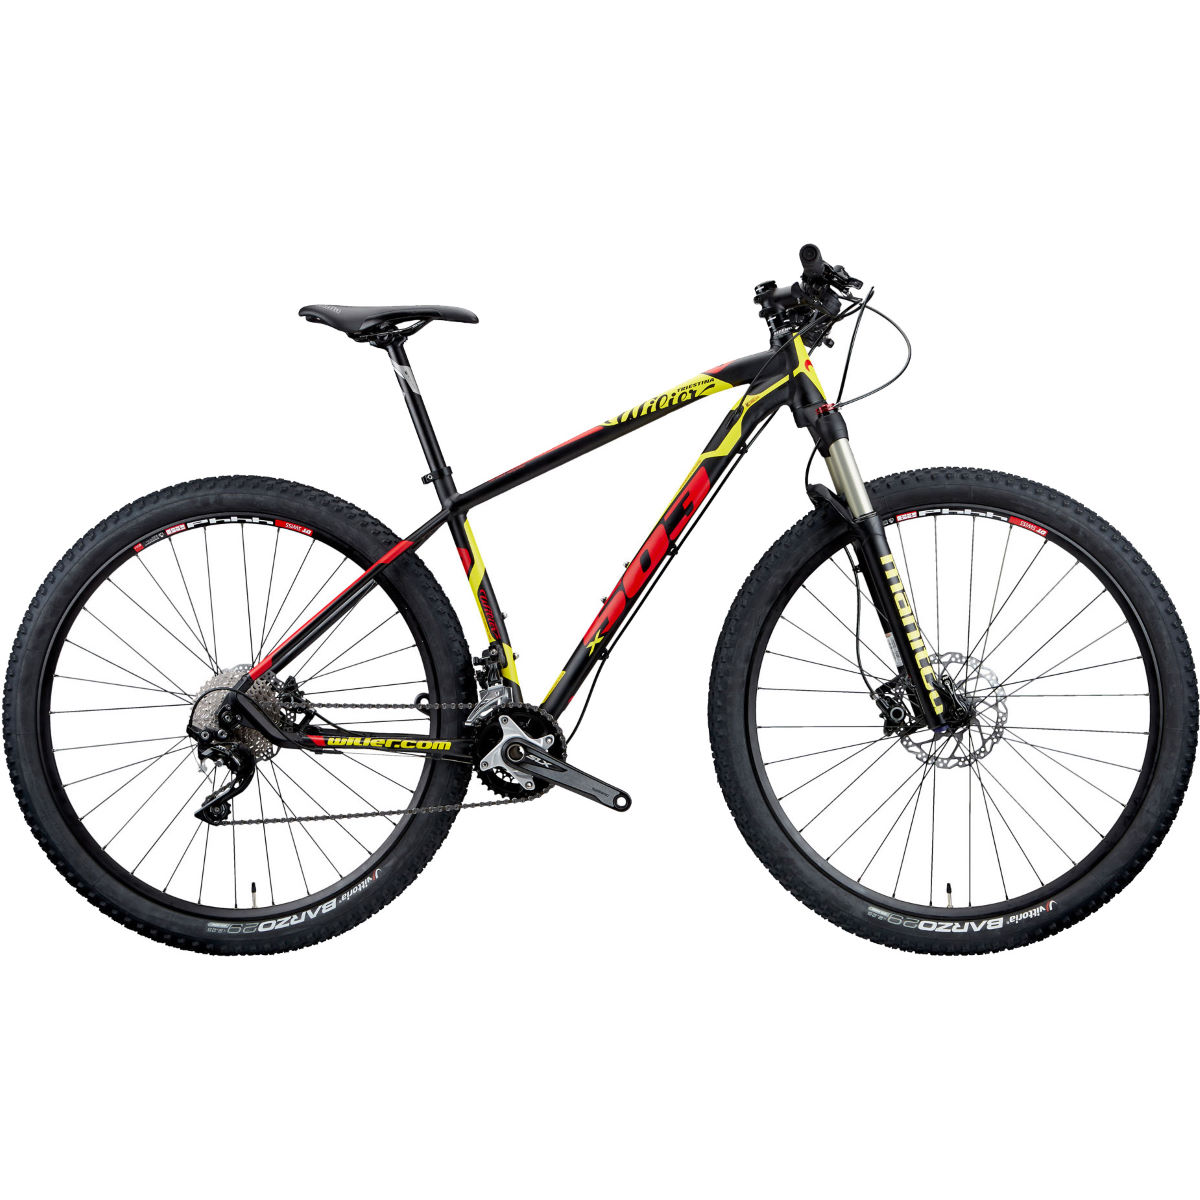 VTT Wilier 503X PRO (SLX, 2018) - S Stock Bike Red/Yellow